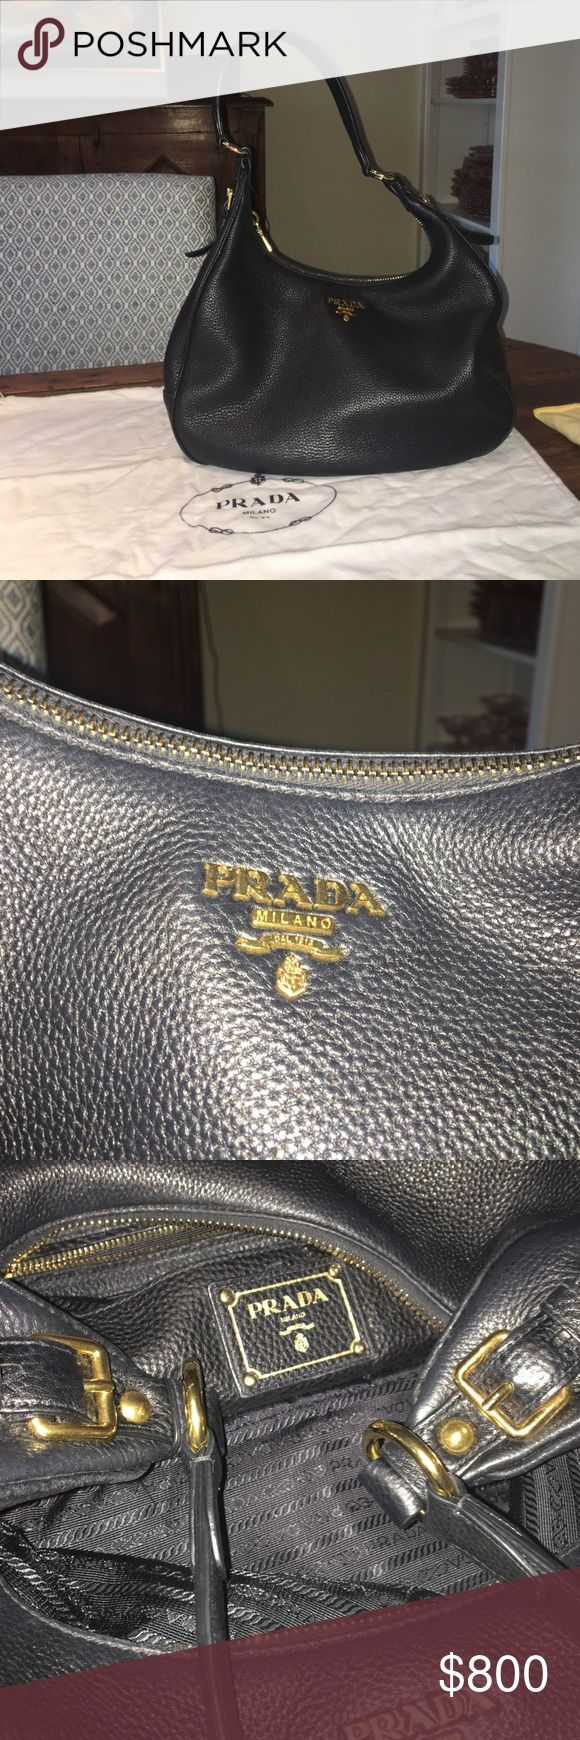 Prada HOBO, Black Vitelli Daino B4311M Excellent condition!  Like new.  Purchased in Nov. 2014, little use.  Black with gold hardware.  Ziptop Hobo shoulder bag.  No worn edges.  Inside is great condition.  Have receipt and original dust bag.  Purchased at Prada outlet (last season bags- not 2nd's) for $975, original price $1550. Prada Bags Shoulder Bags